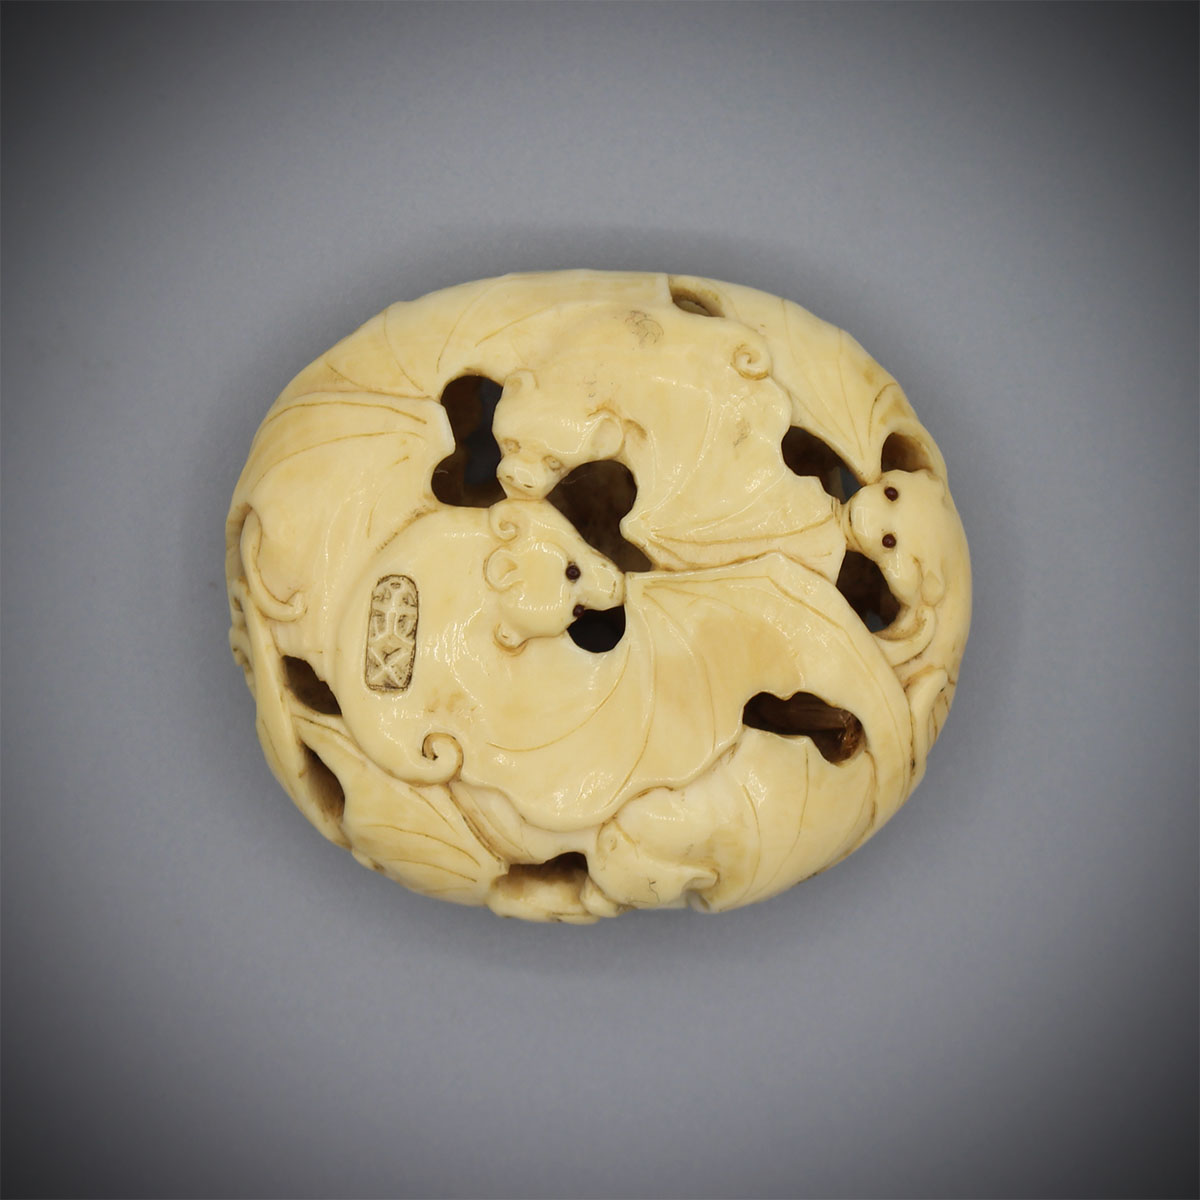 Ivory Manju Netsuke Carved with Nine Bats, MR3168_v1